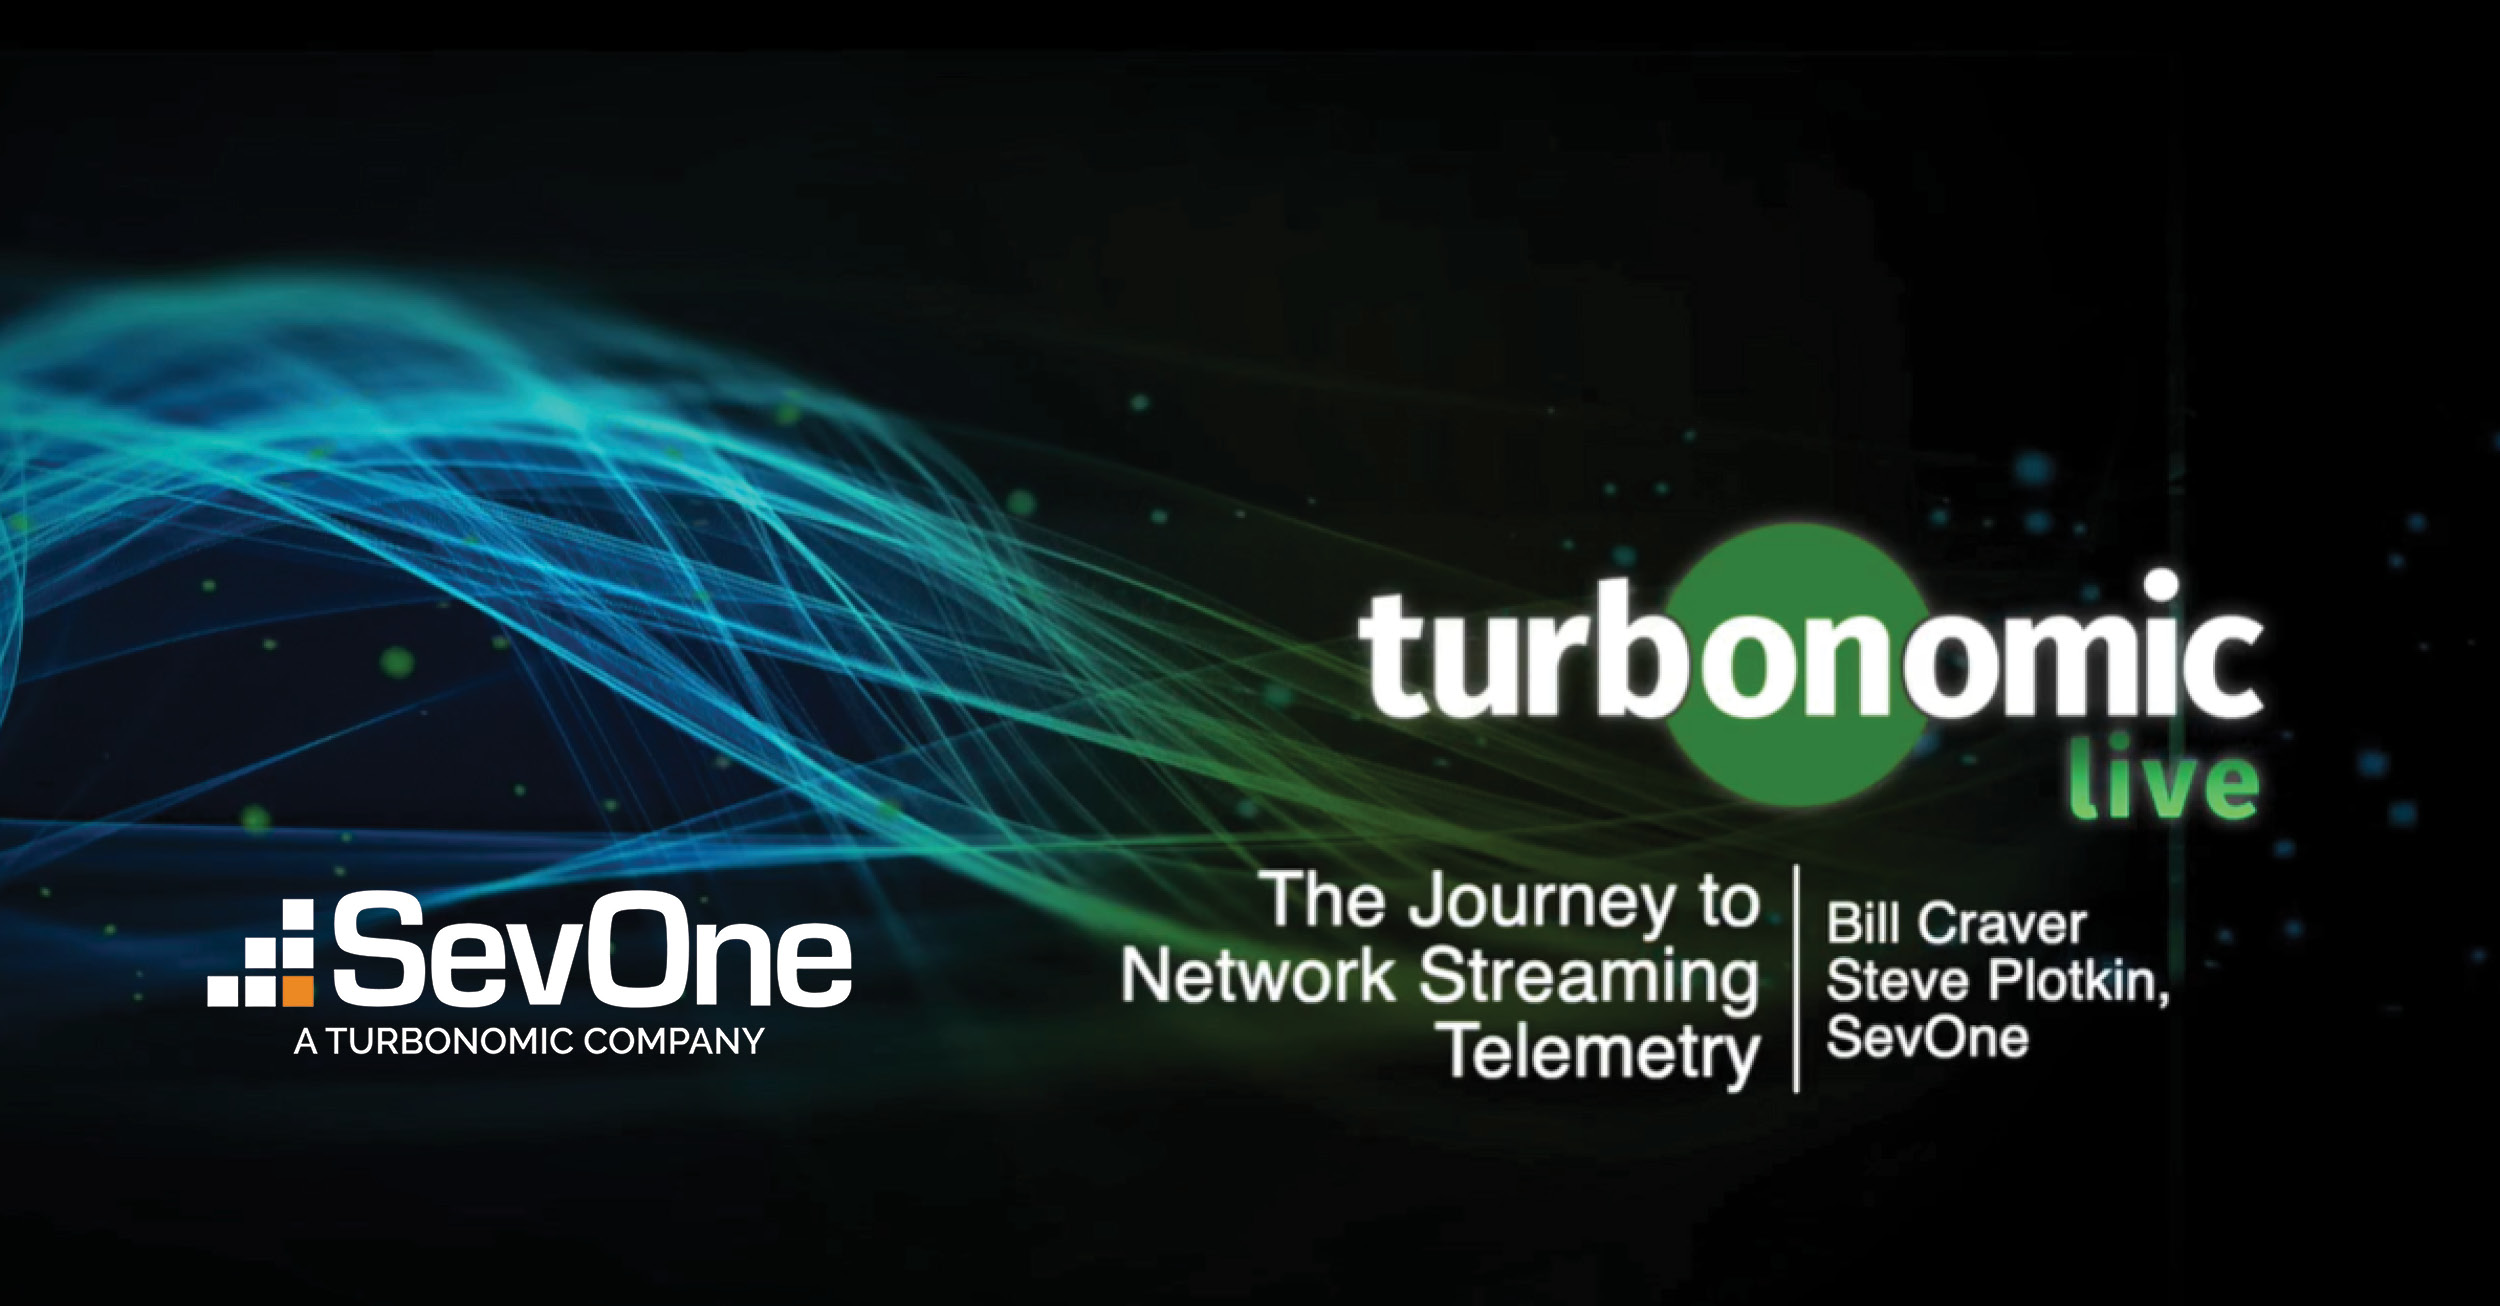 The Journey to Network Streaming Telemetry thumbnail